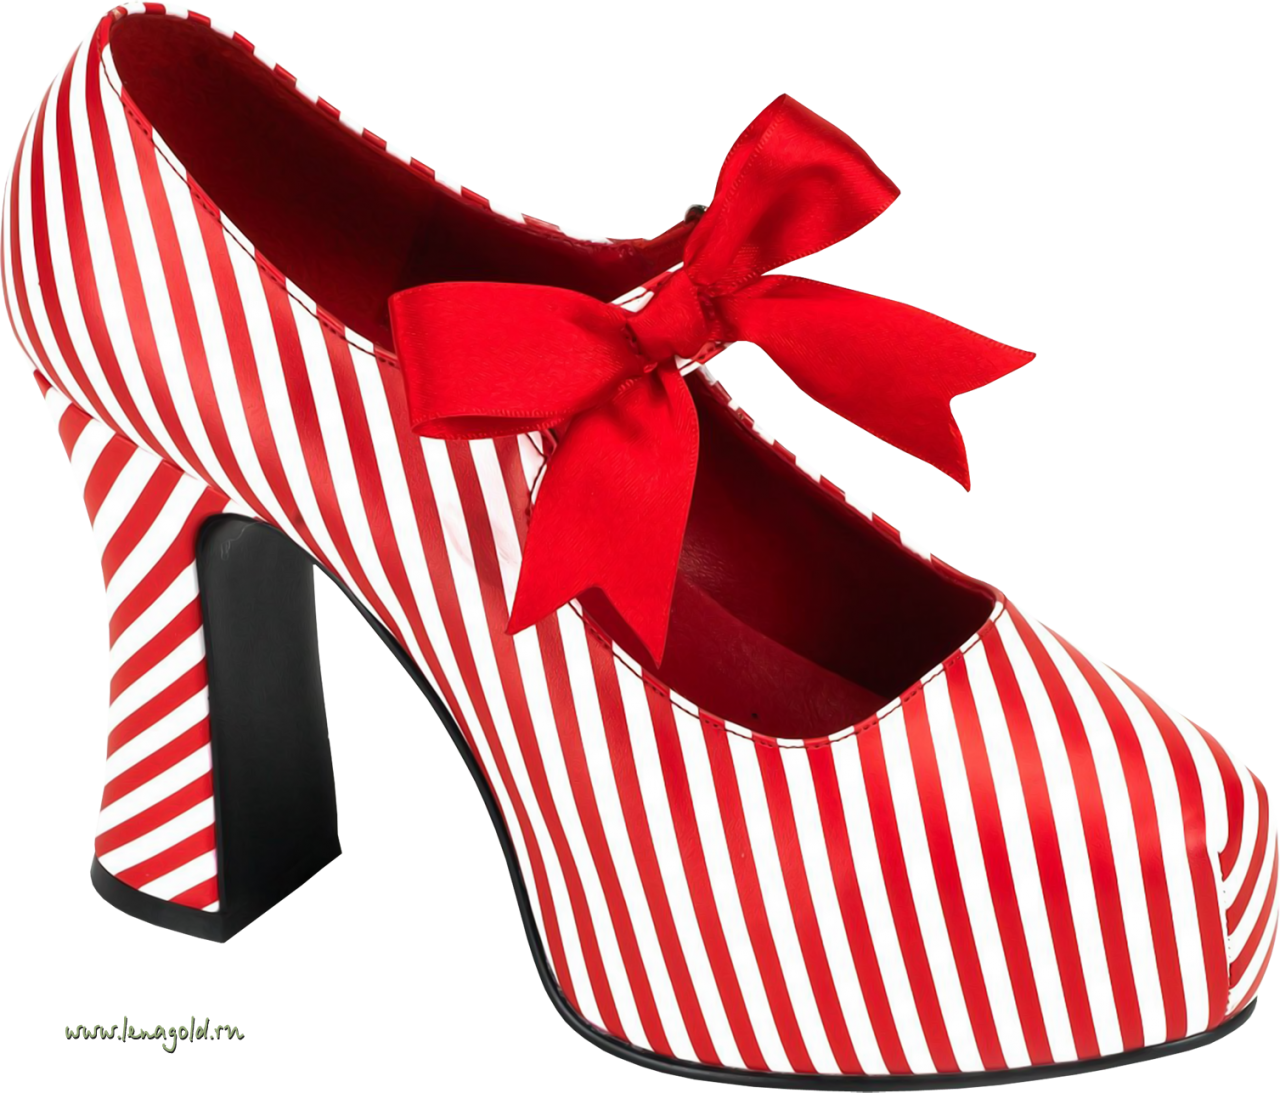 Red Women Shoe PNG Image